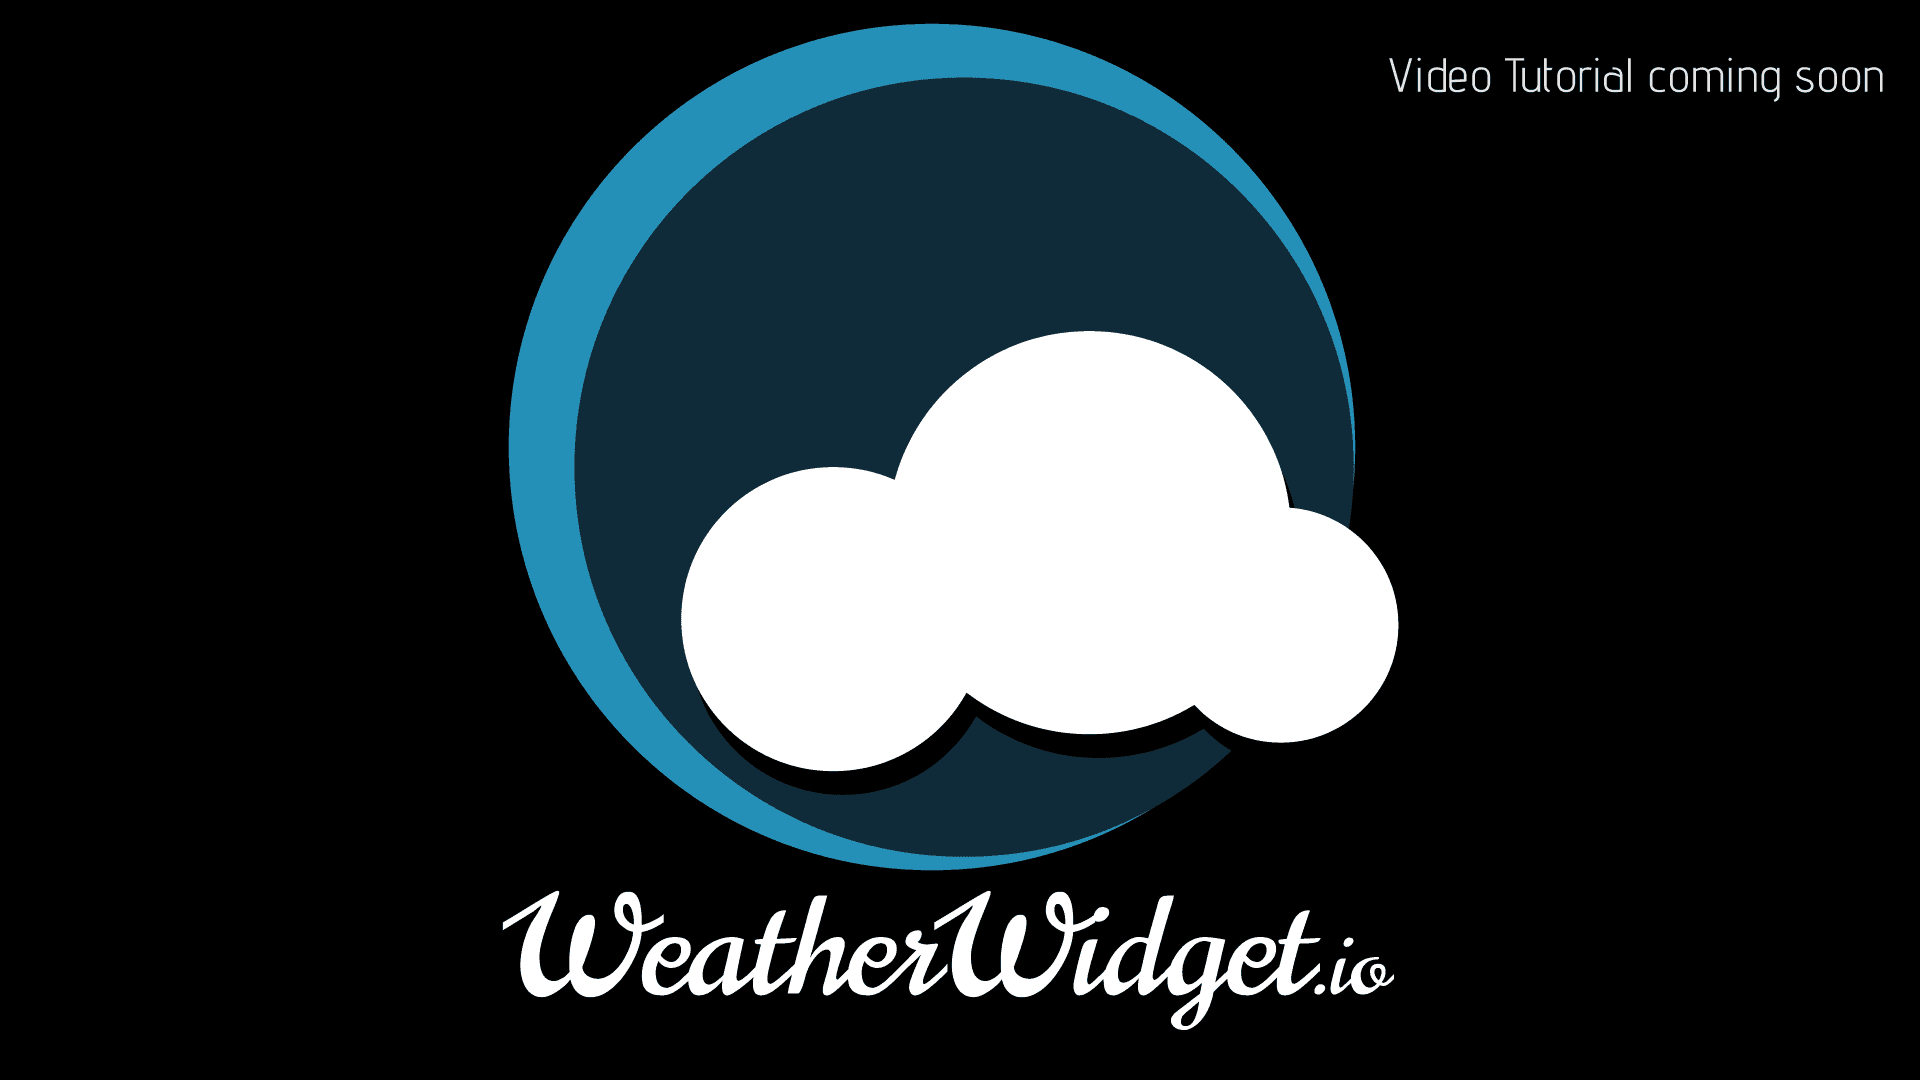 A video tutorial about WeatherWidget.io will be placed here soon.